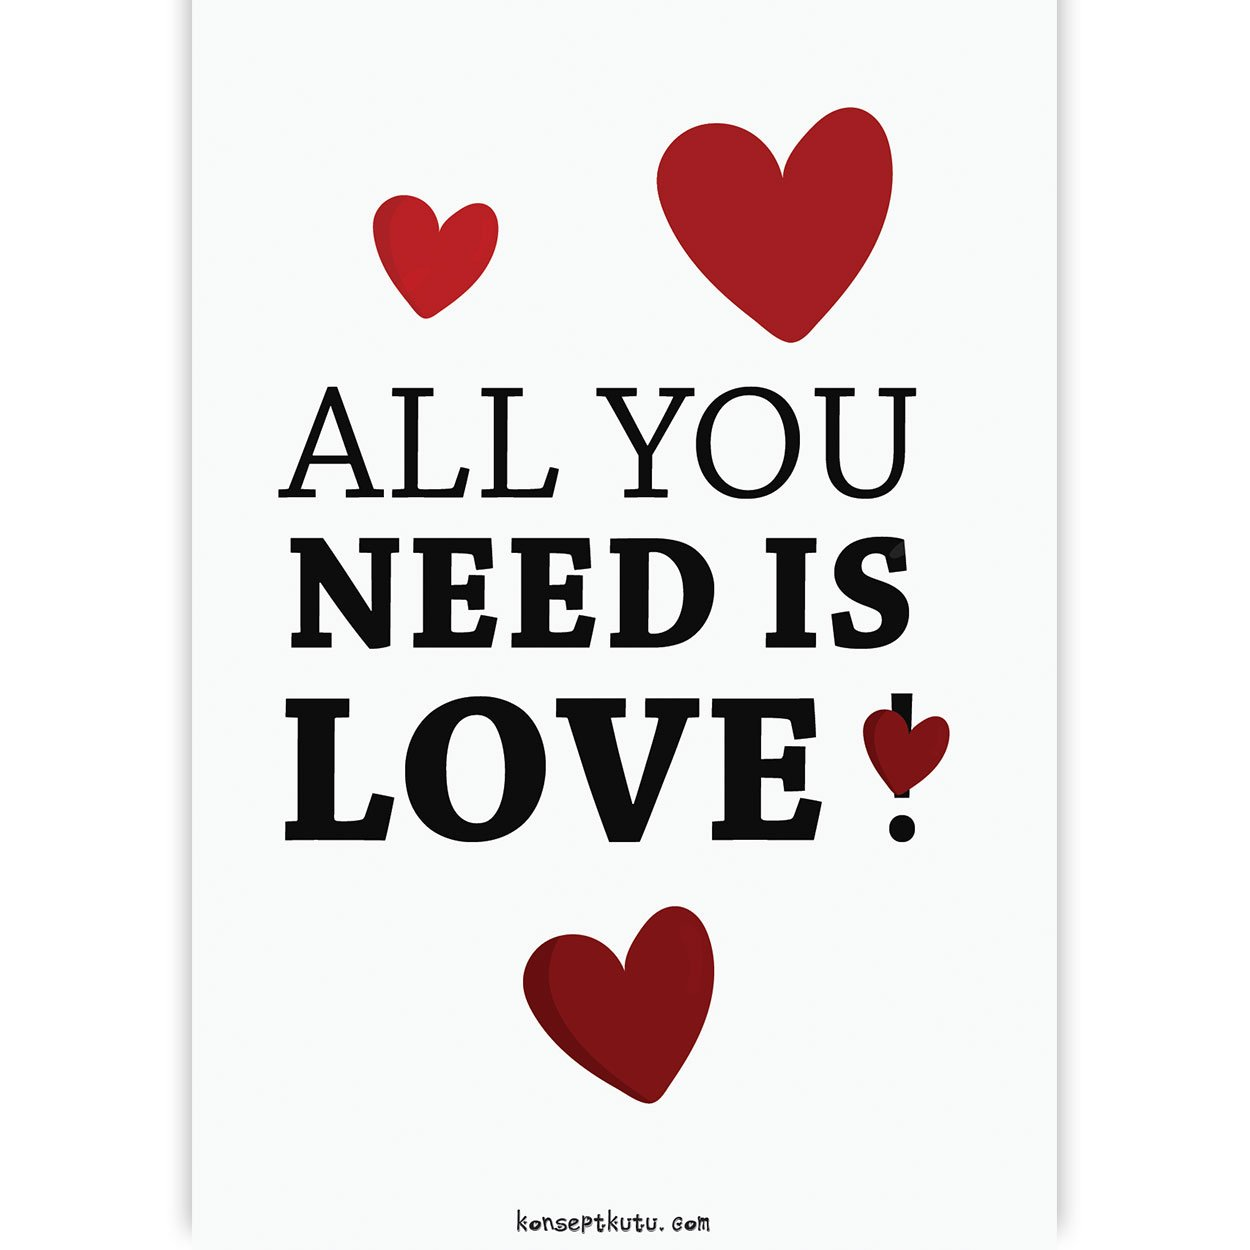 459495-all-you-need-is-love-motto-karti